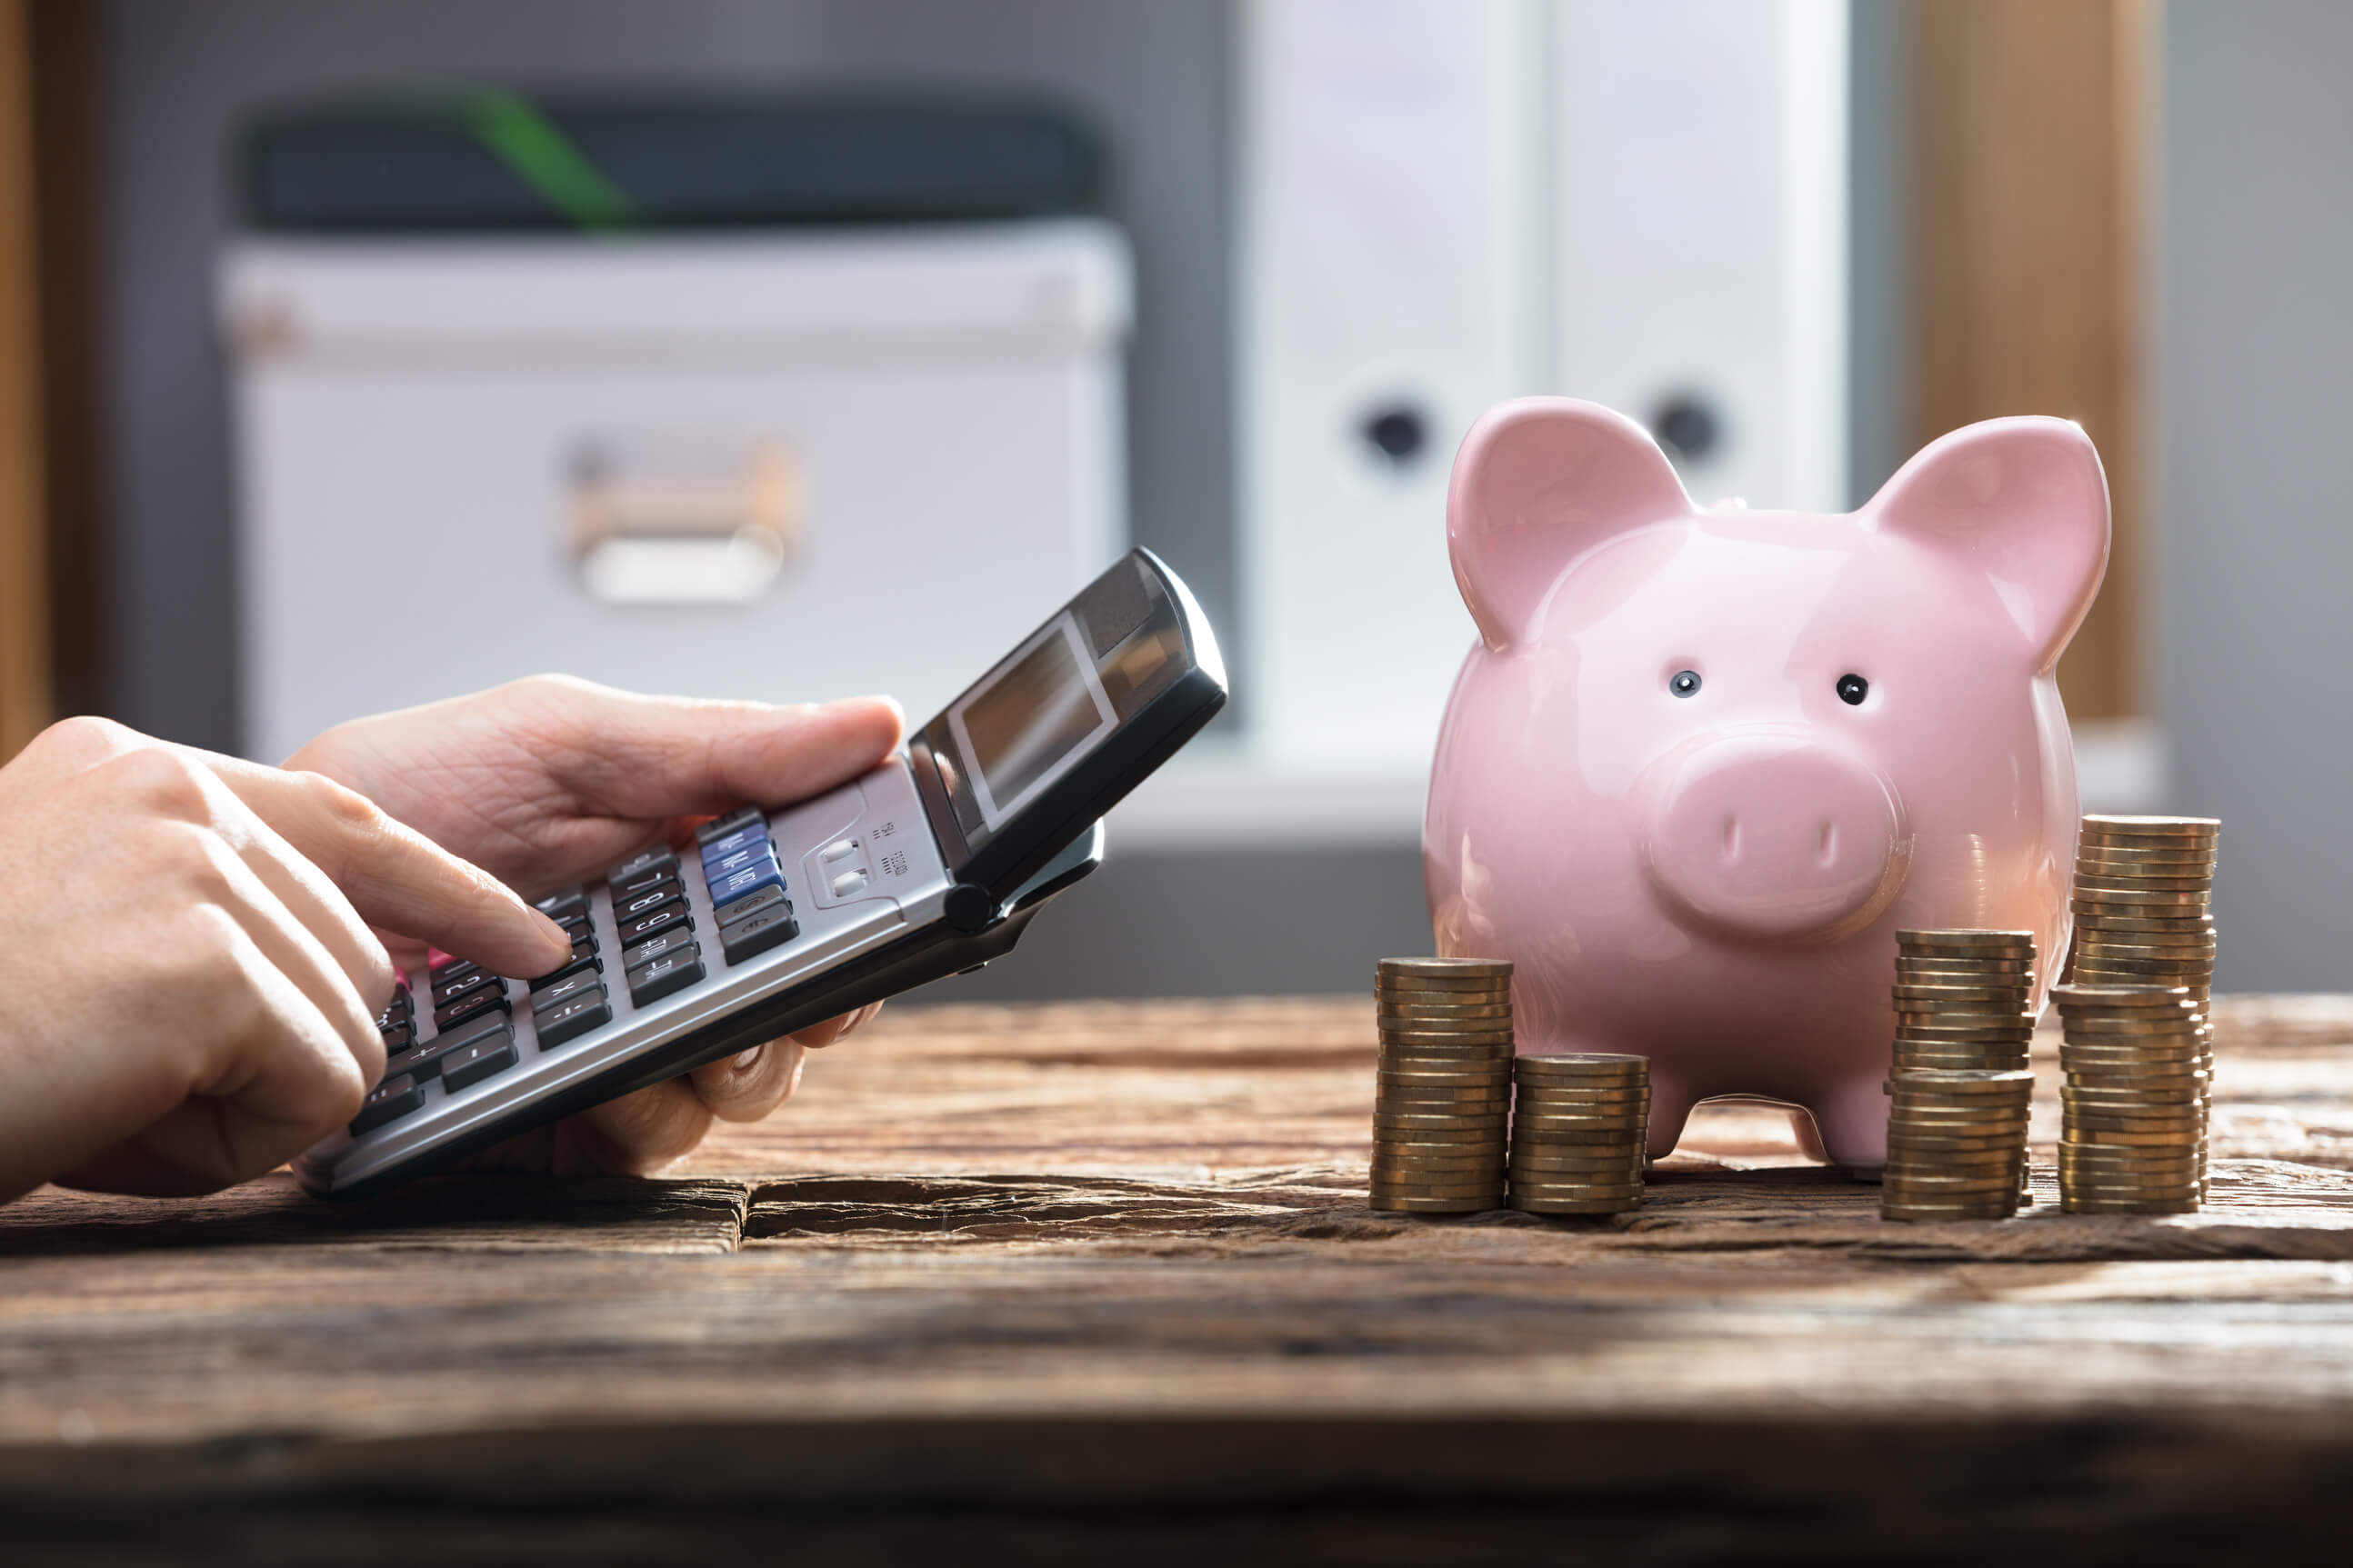 a person using a calculator and a pink piggy bank